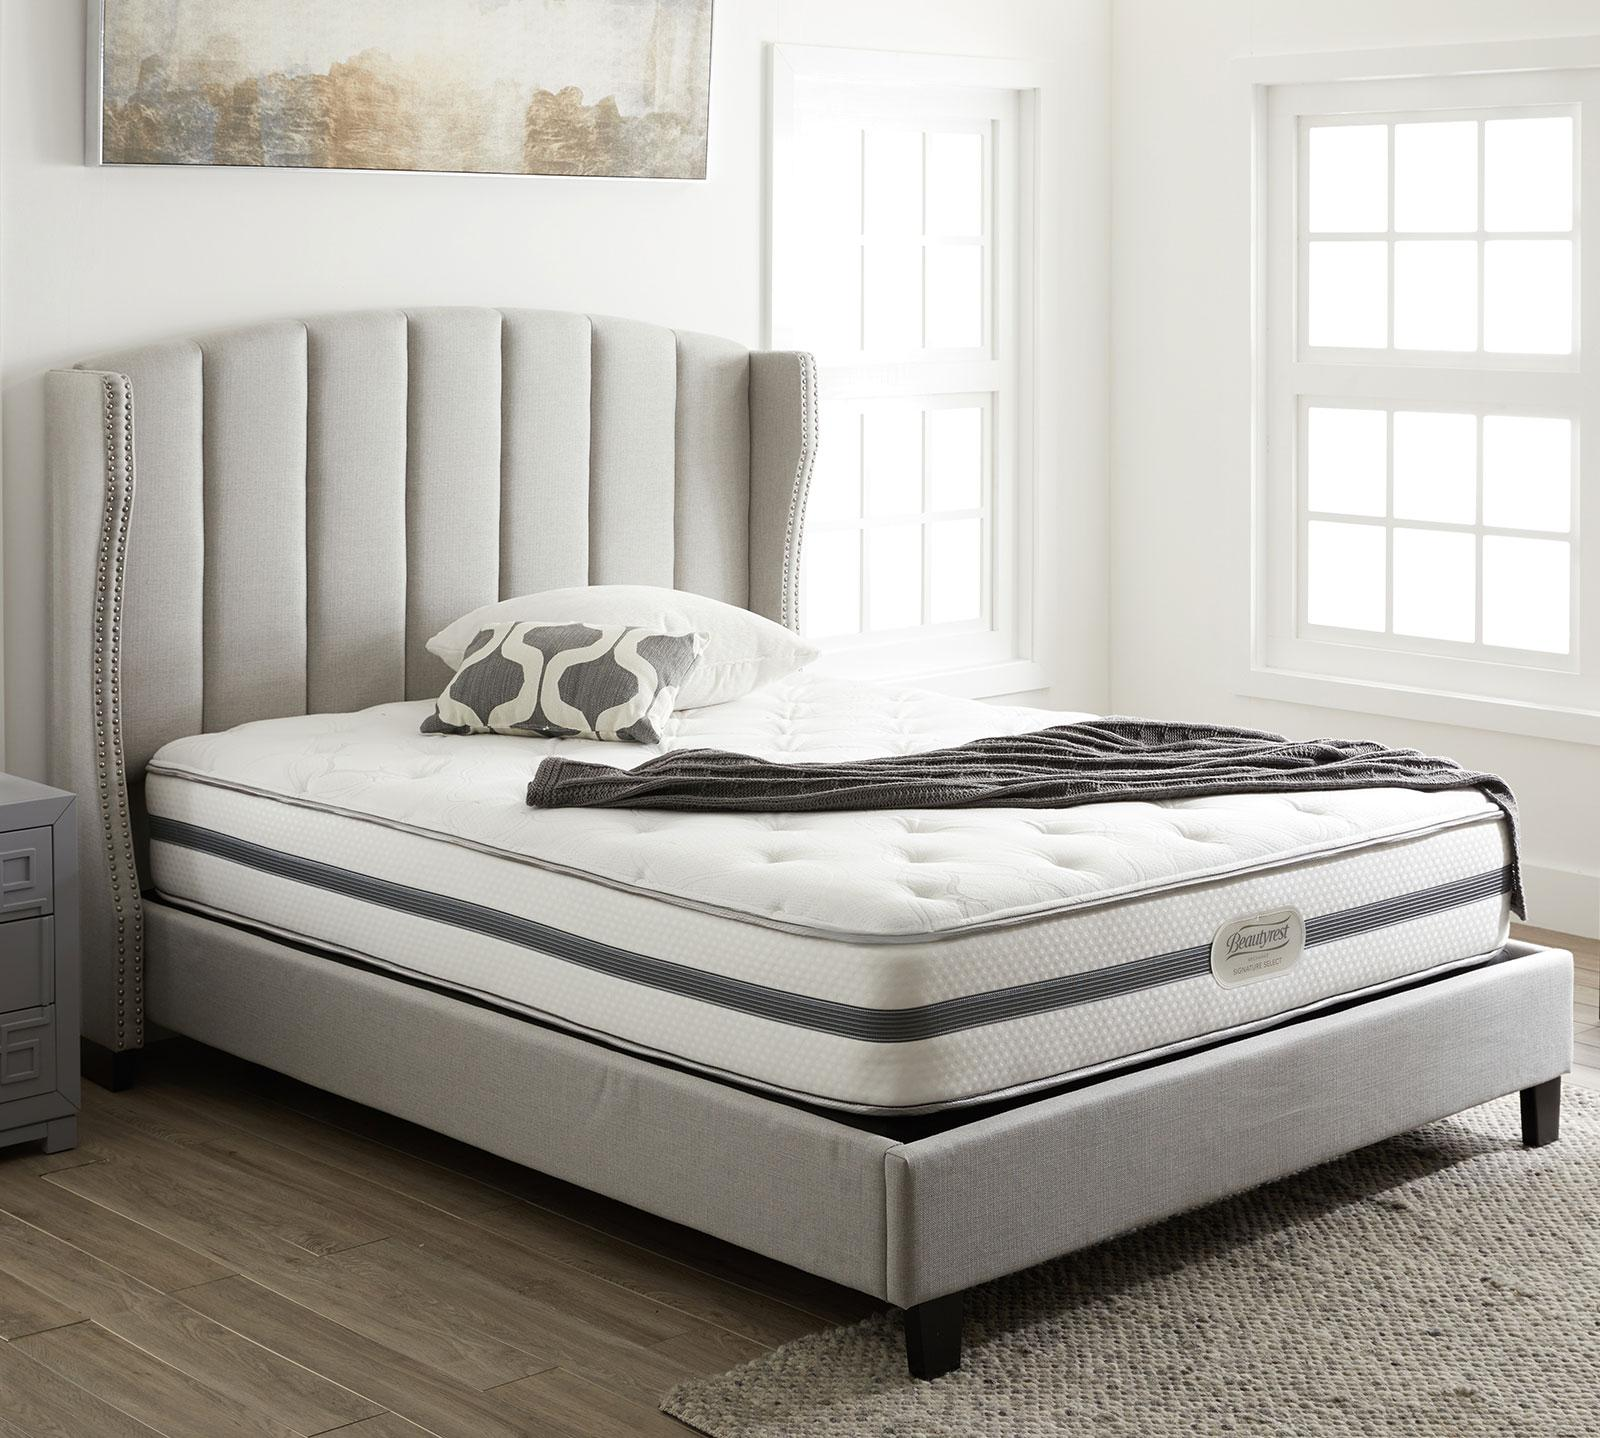 detail texas visit com beautyrest rest company bed pl simmons products mattress brands beauty